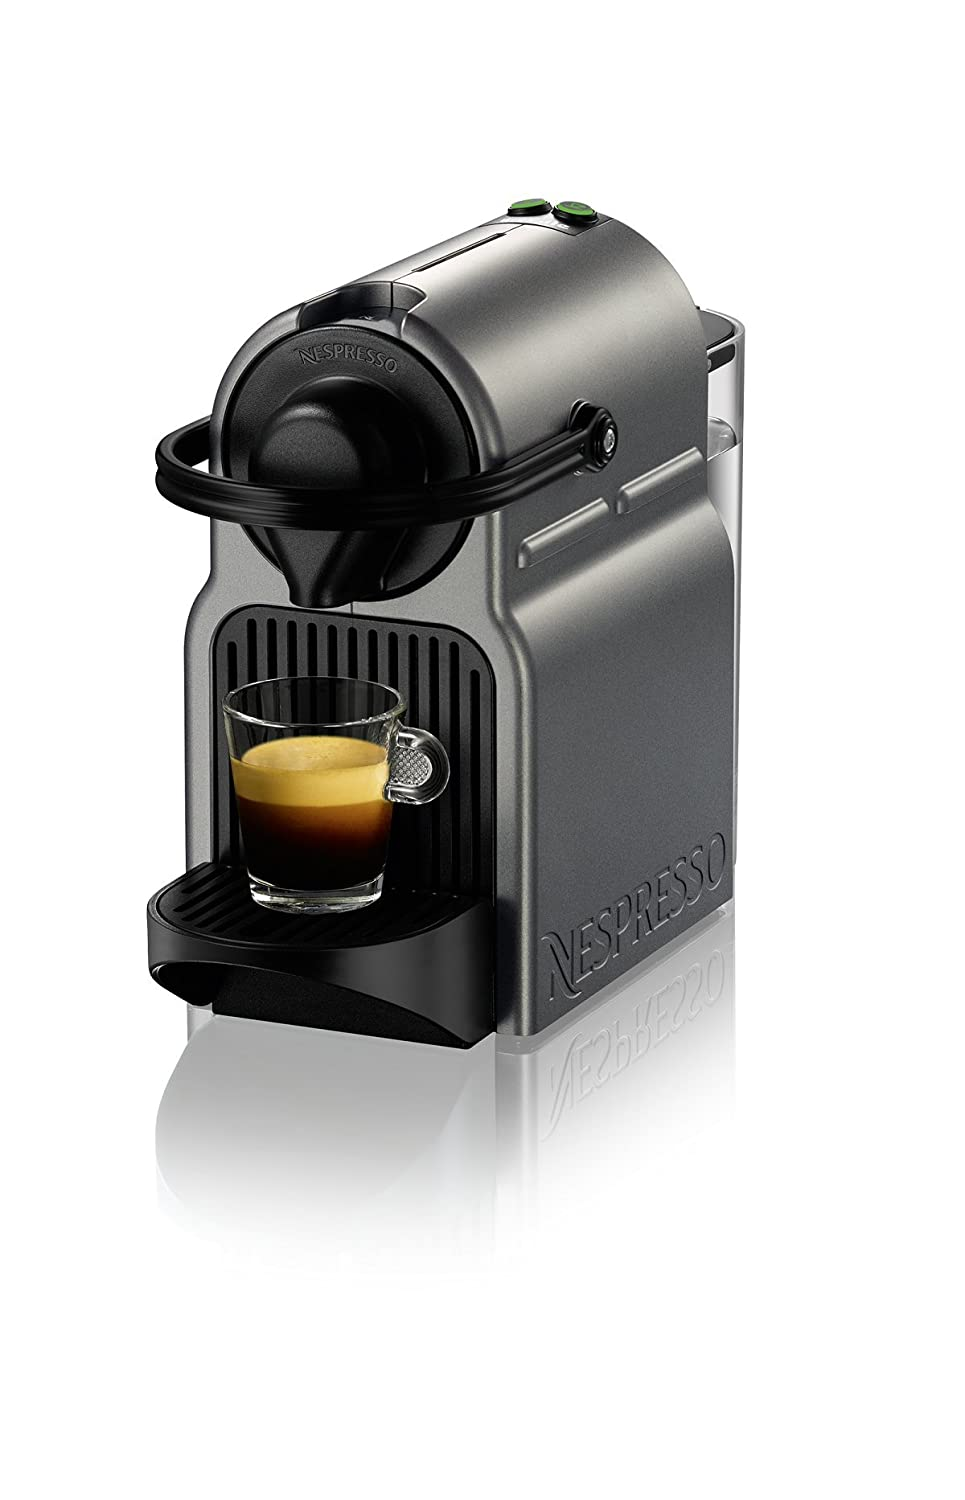 Nespresso Inissia Original Espresso Machine with Aeroccino Milk Frother Review 2